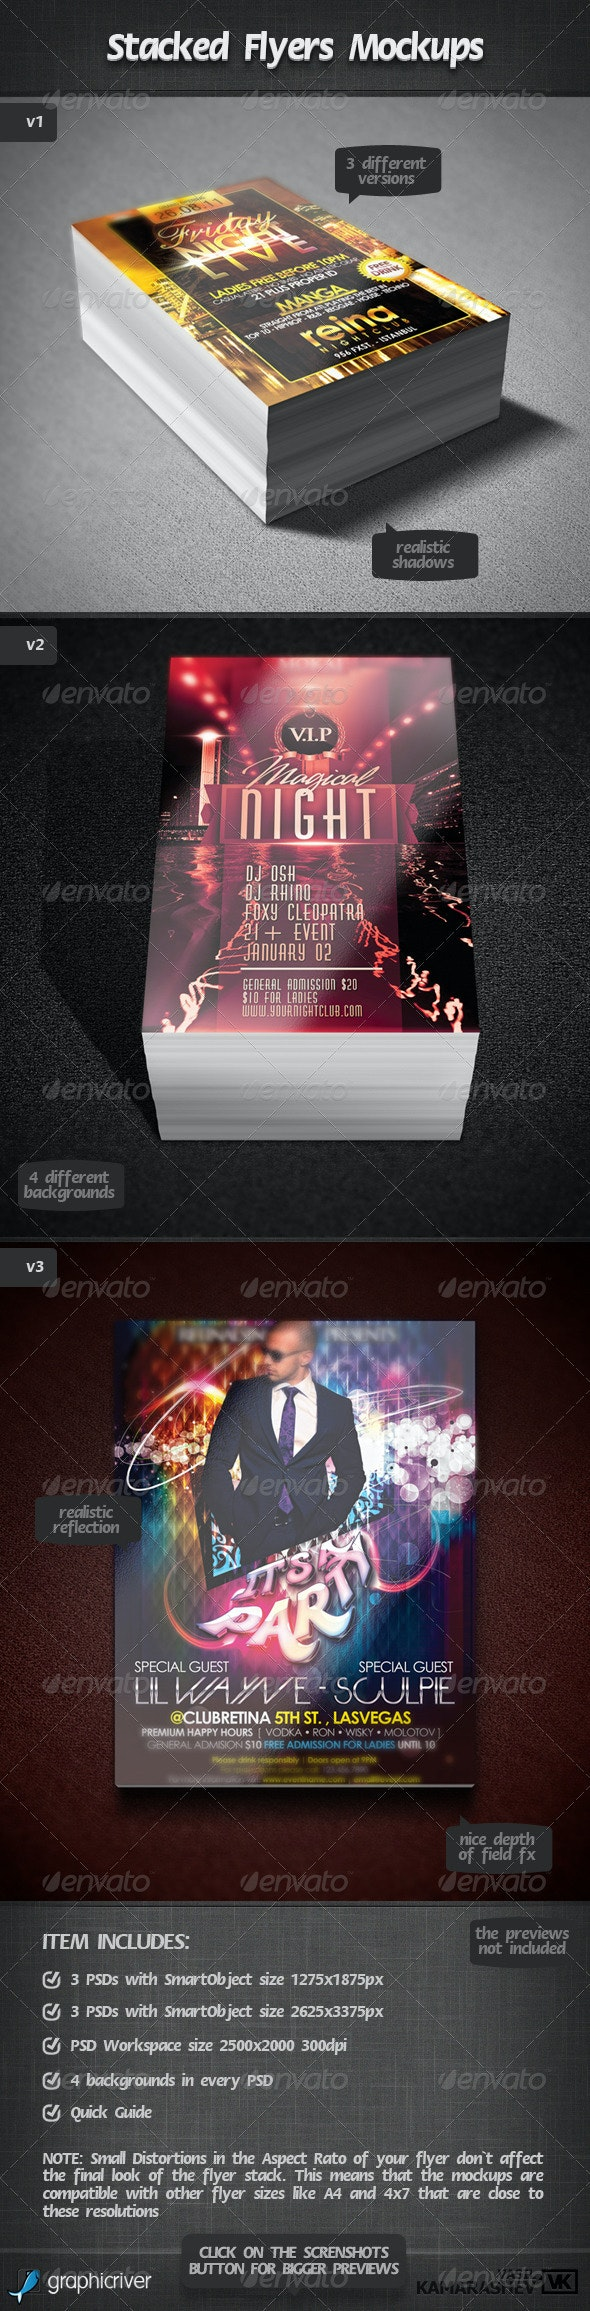 Stacked Flyers Mockups - Flyers Print